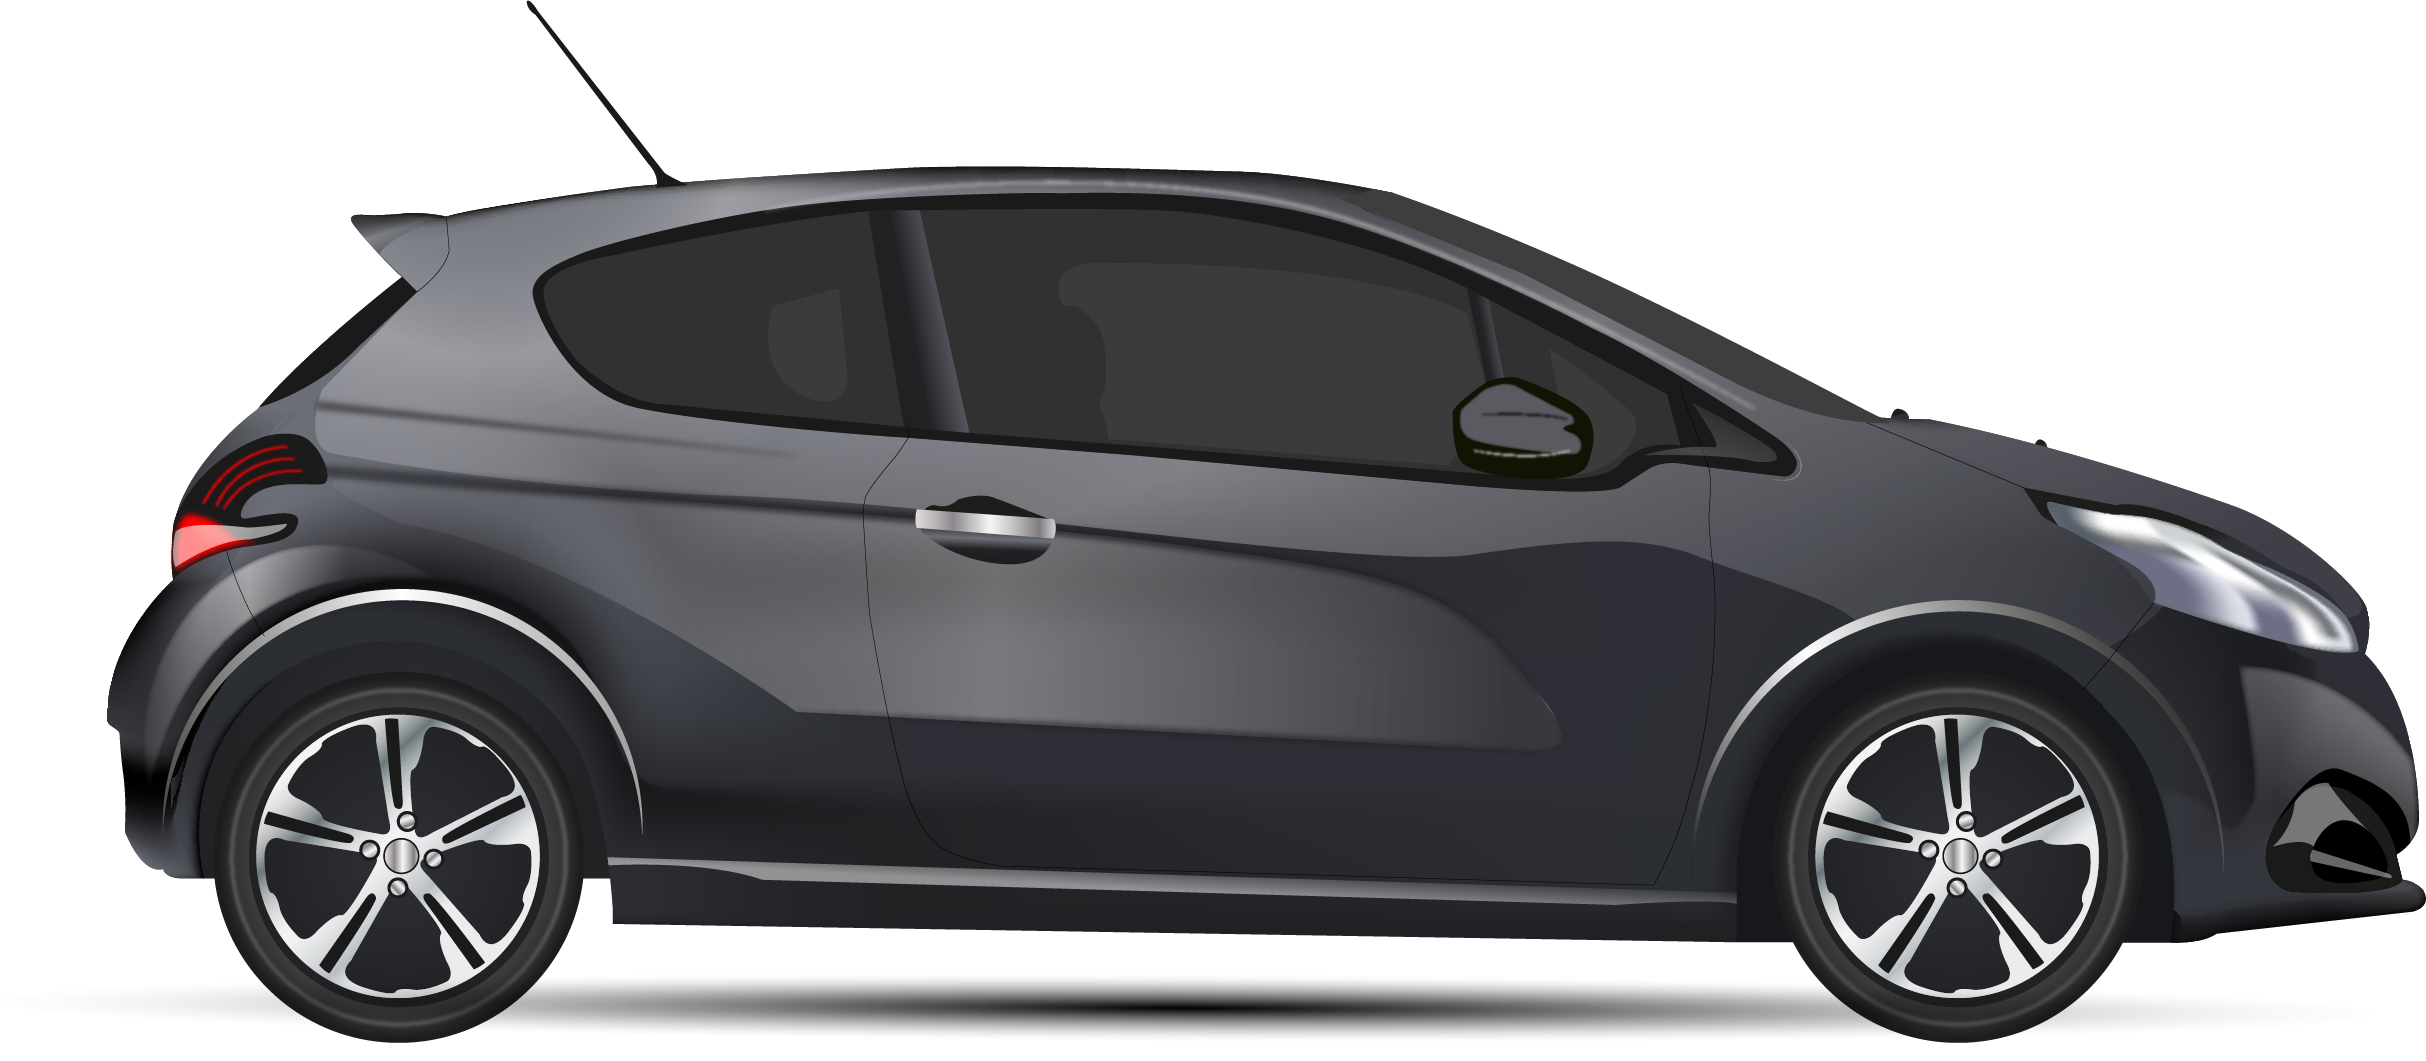 freeuse download Cars clipart. Car png transparent free.